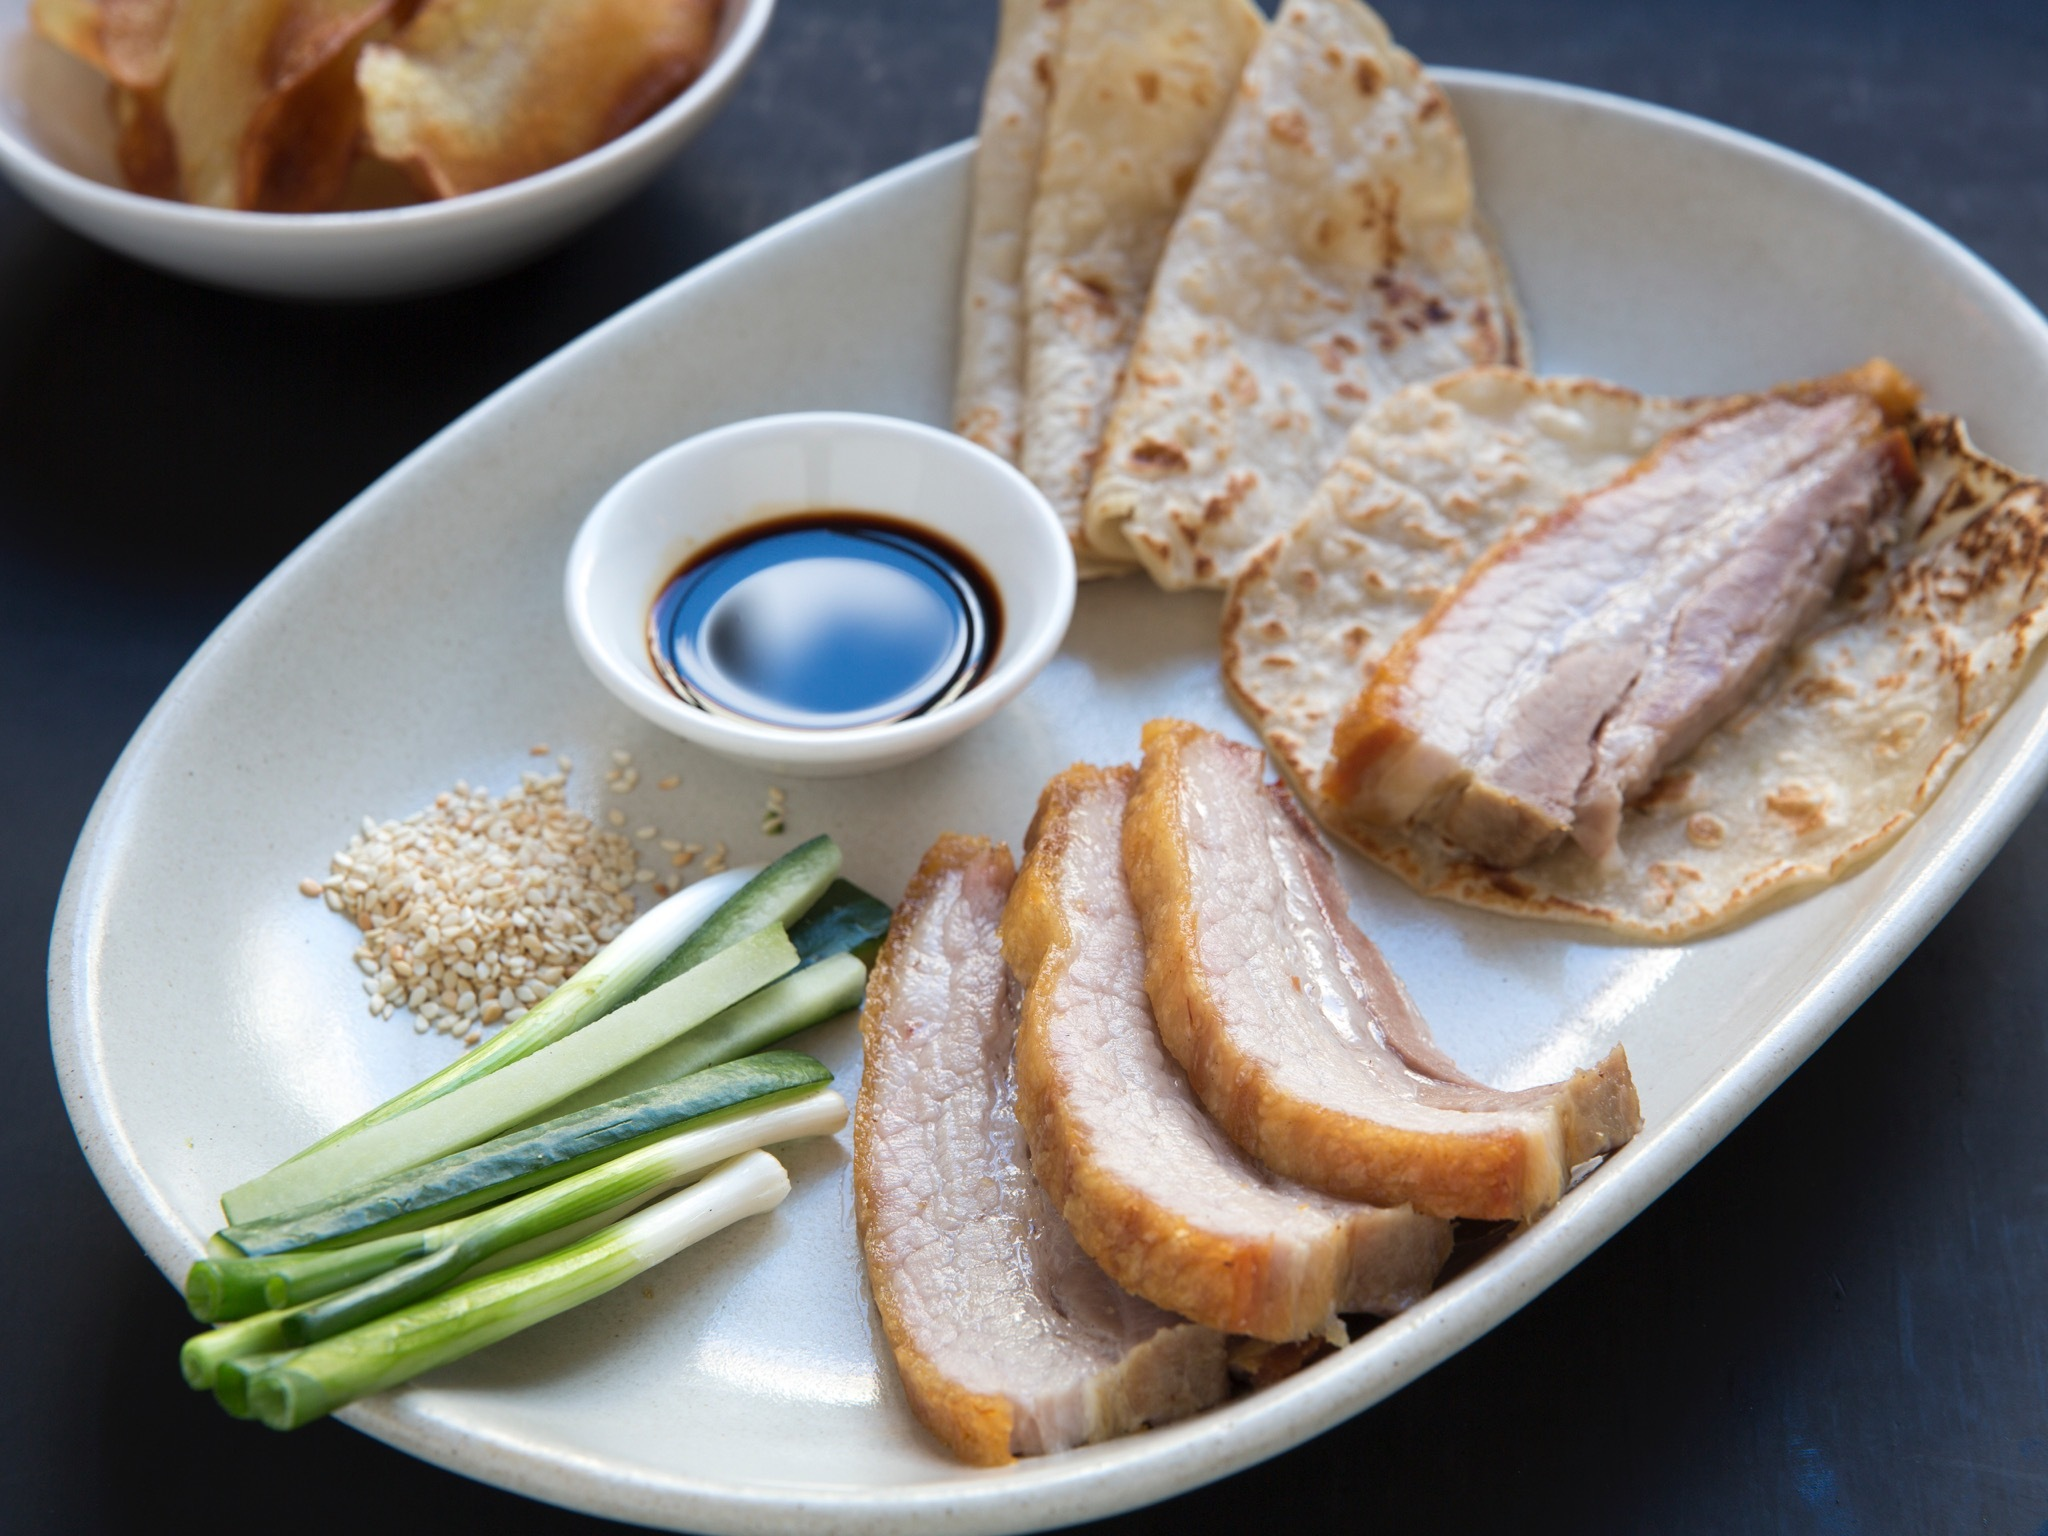 A plate with strips of roast pork, shallots, sesame seeds, dark